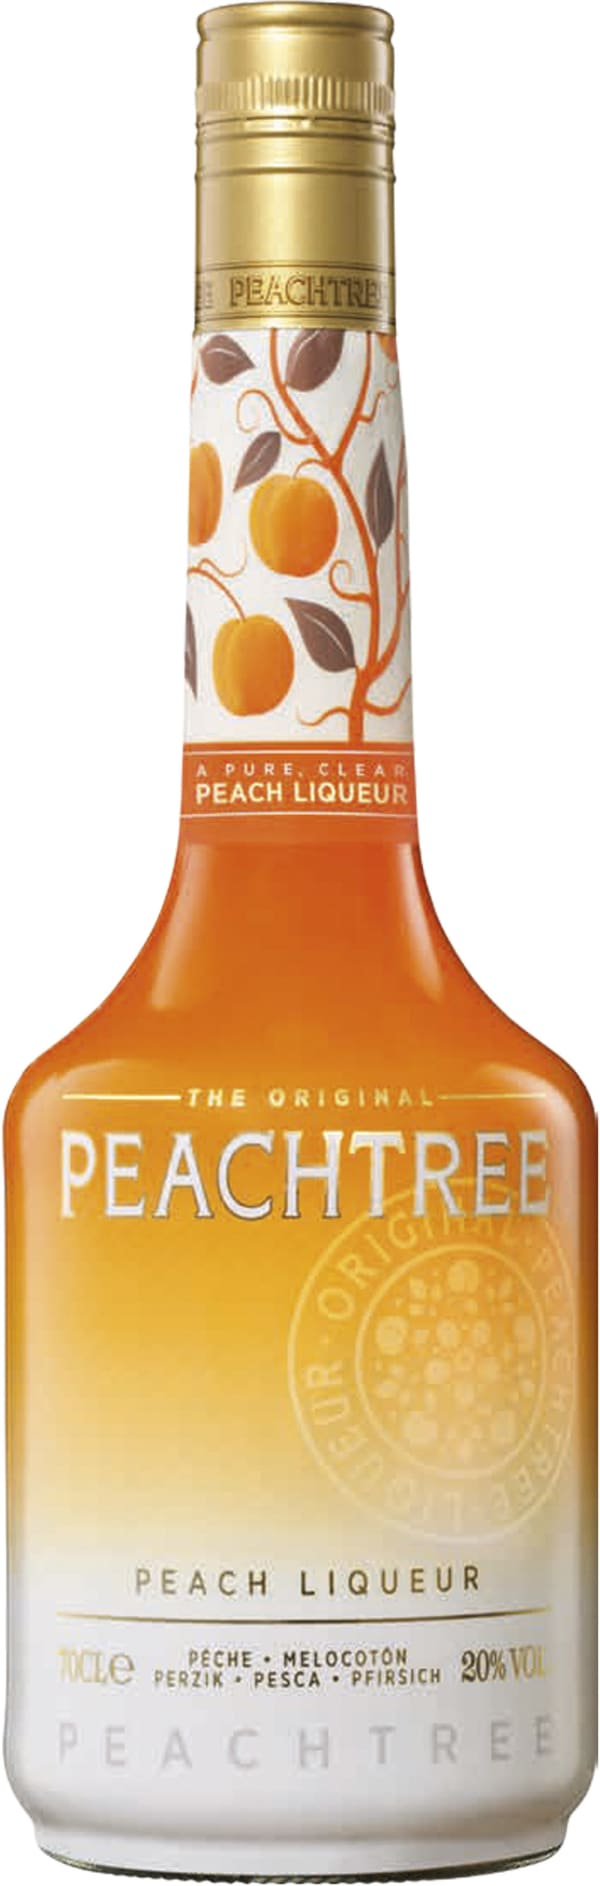 The Original Peachtree